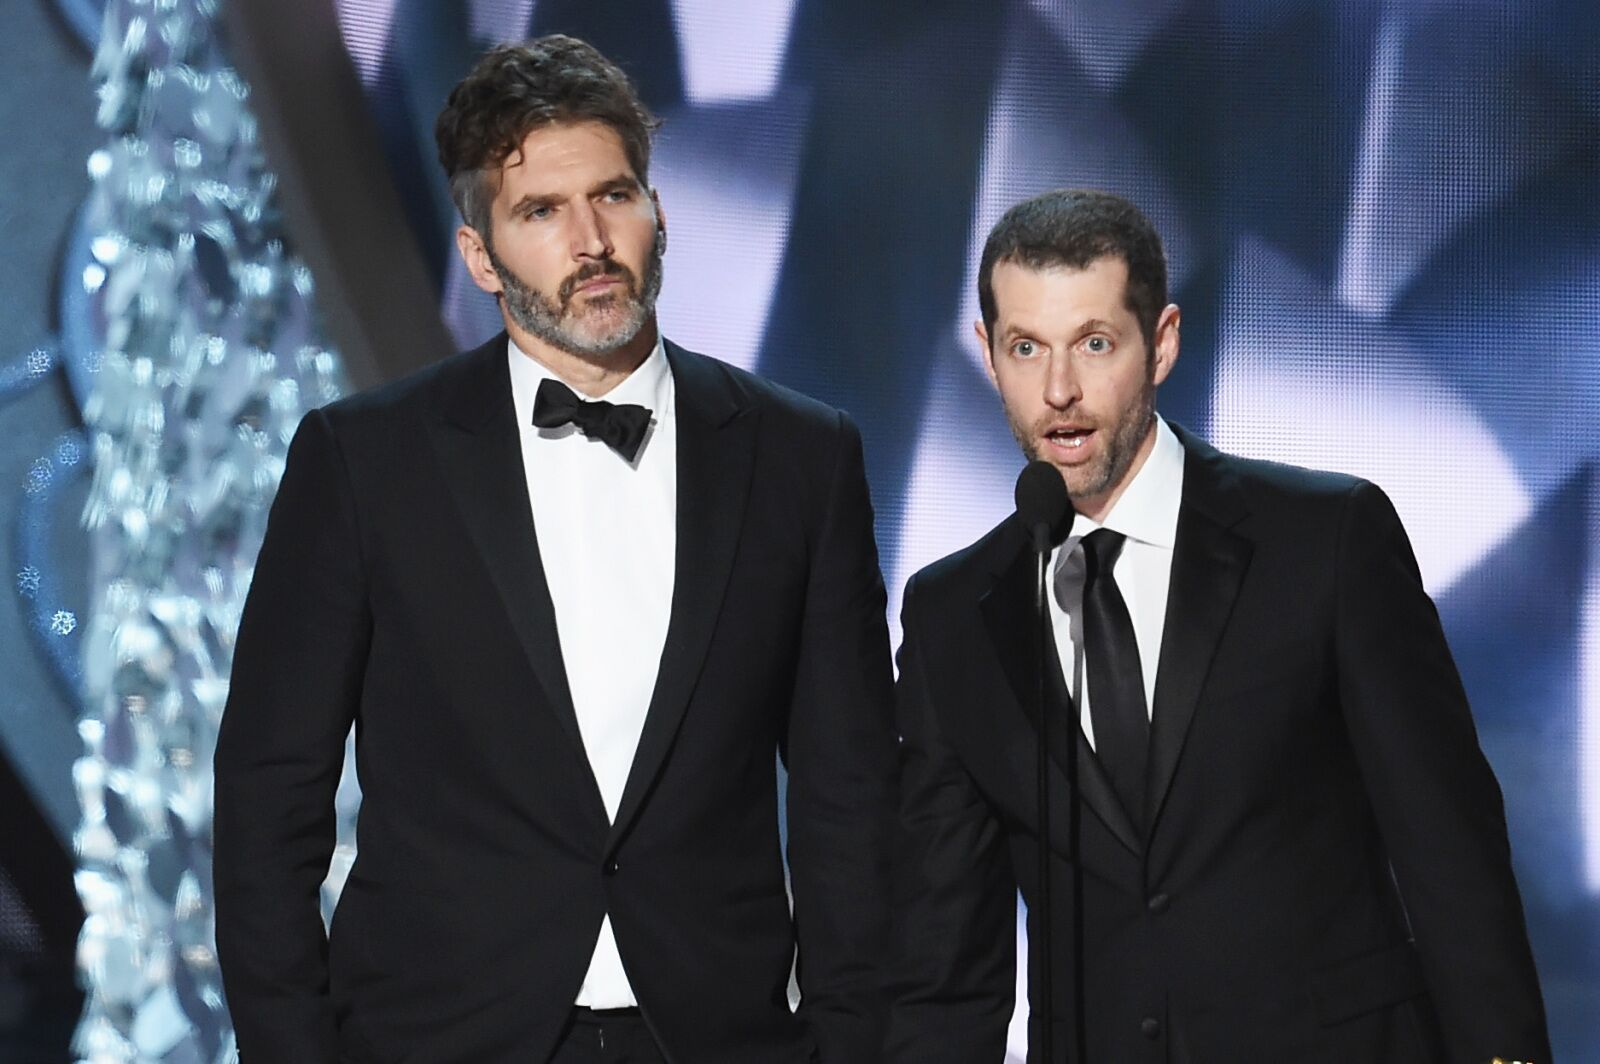 Take the Black Live: At long last, Benioff and Weiss speak!